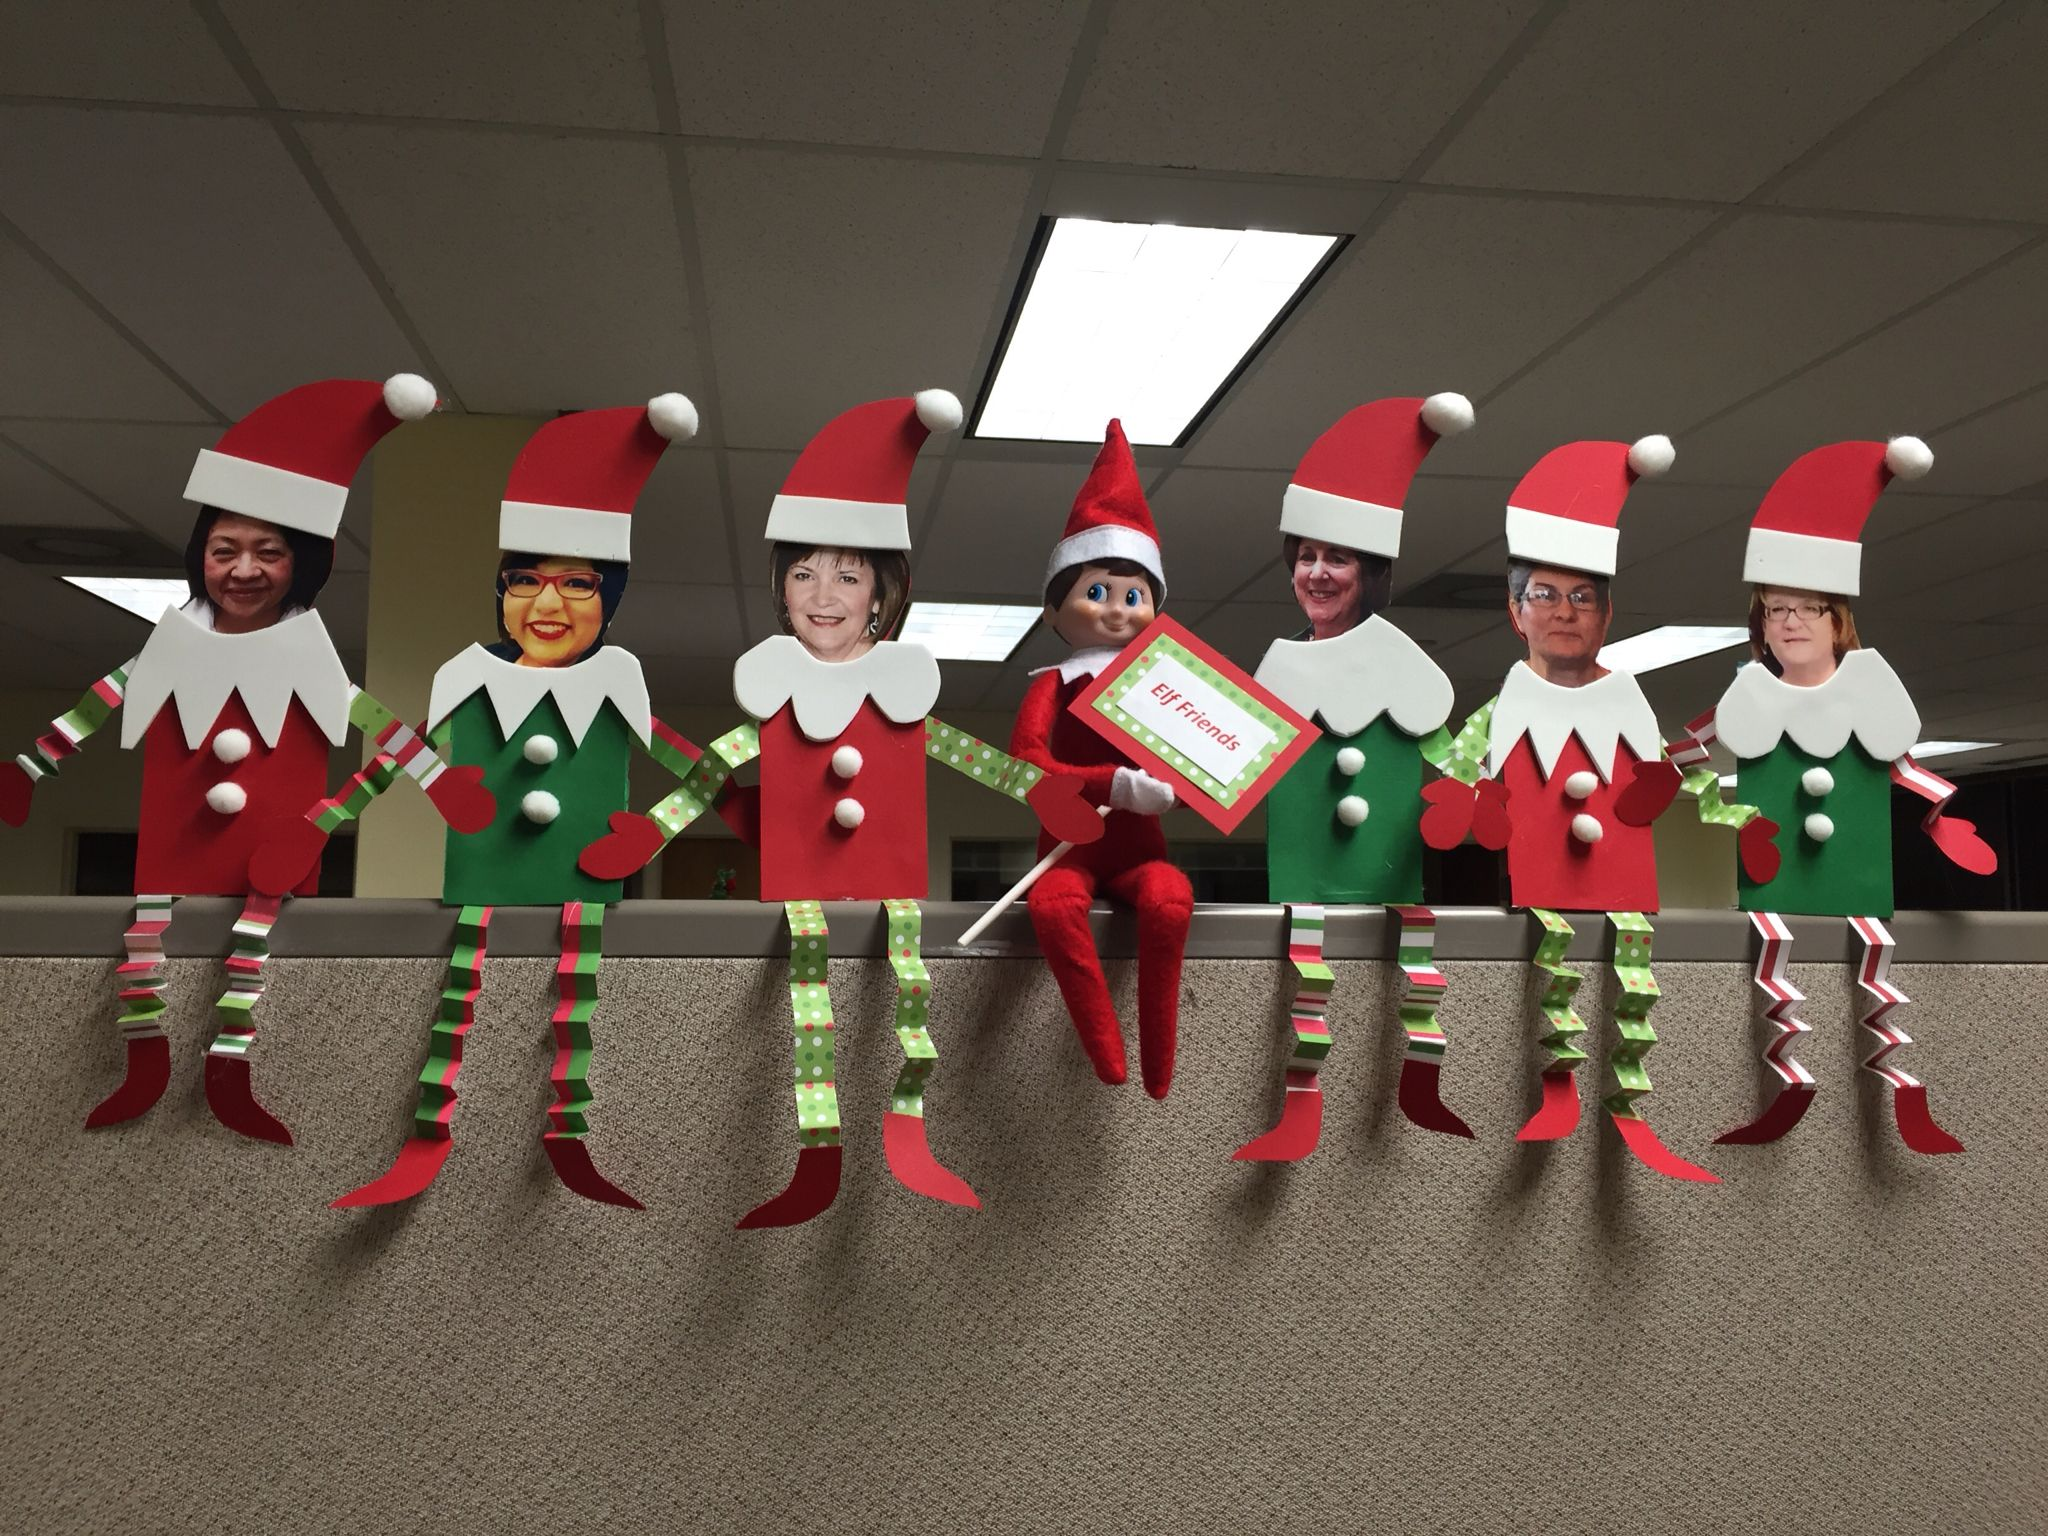 office xmas decoration ideas. Elf On The Shelf At Office. Friends. Office Xmas Decoration Ideas I